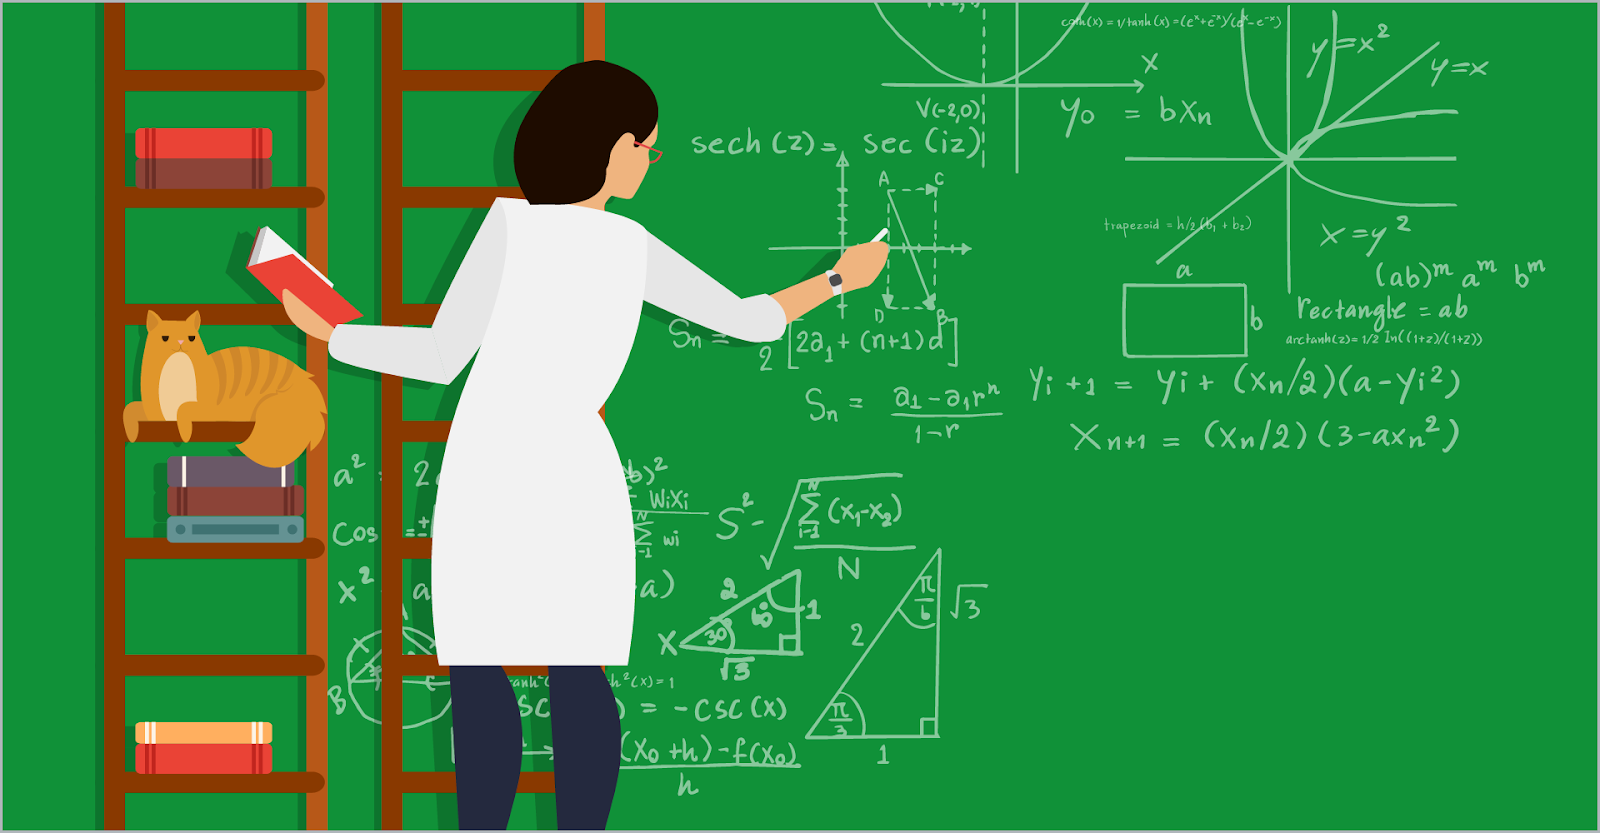 Sarah the mathematician stands on a ladder, solving a complex math problem on a huge chalkboard. Pickles the cat watches from another ladder.